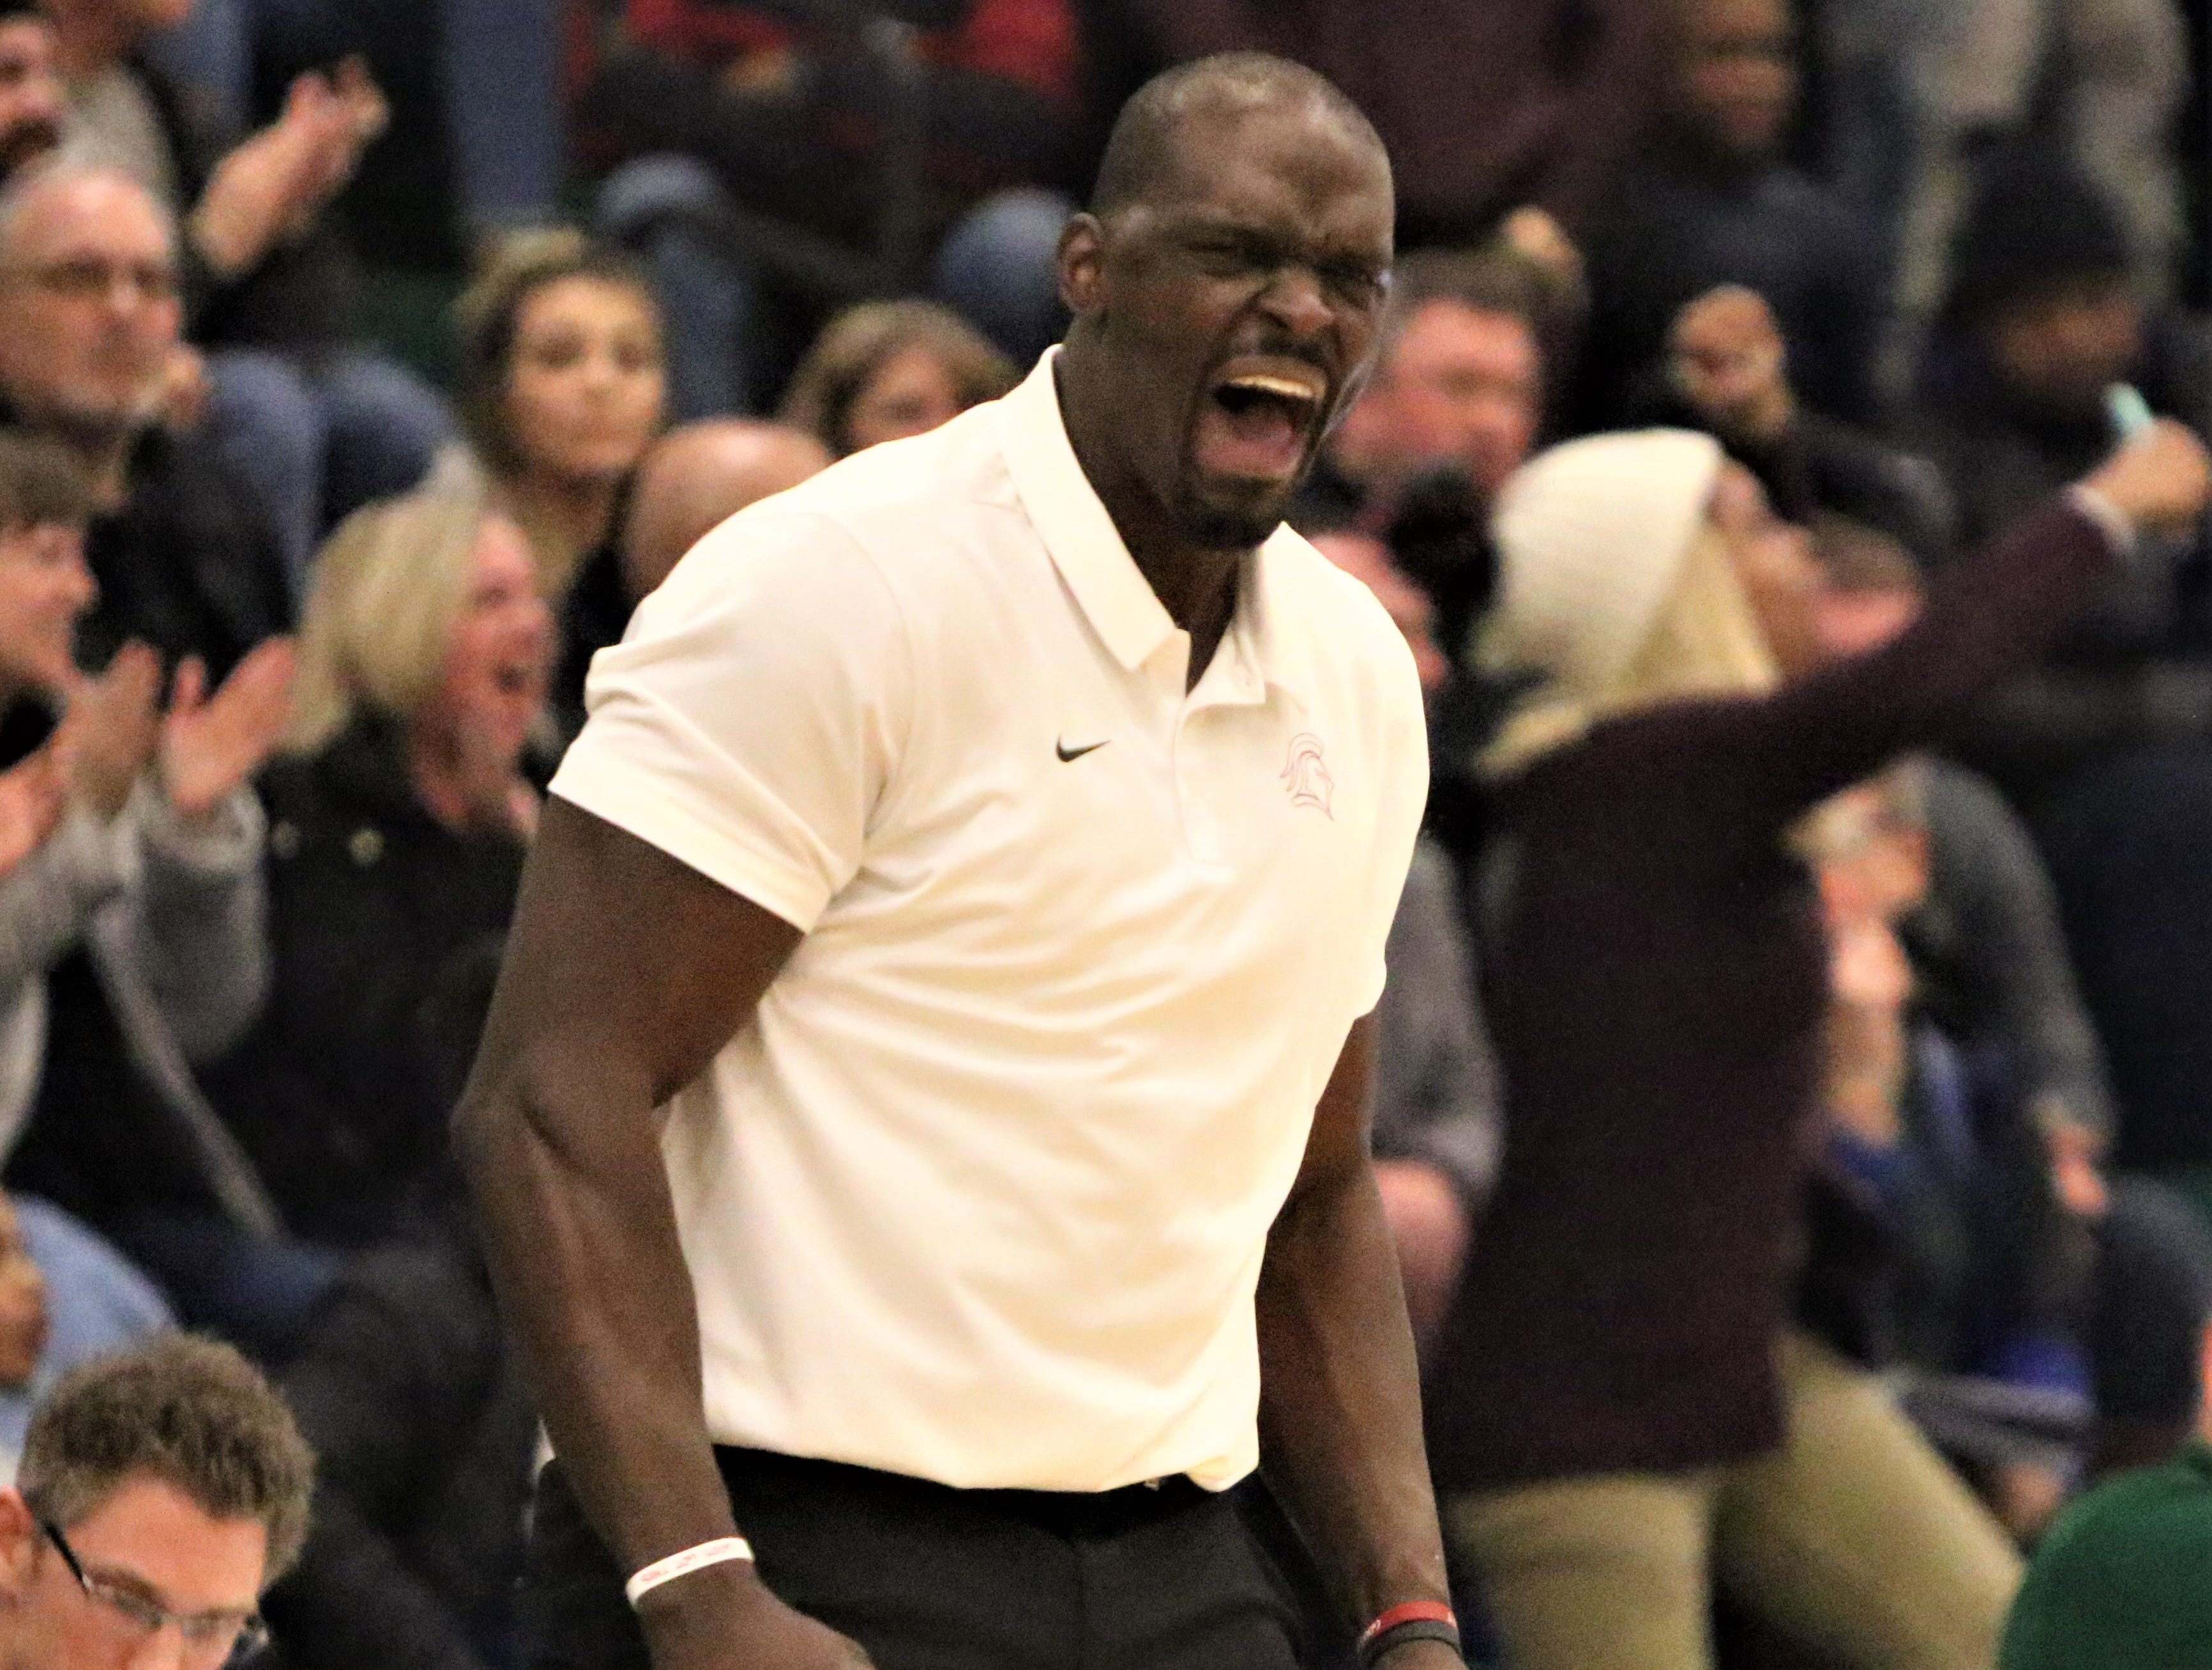 Milwaukee Lutheran head coach Marcus Jackson celebrates a basket by his team during a game against Greenfield on Feb. 8, 2019.